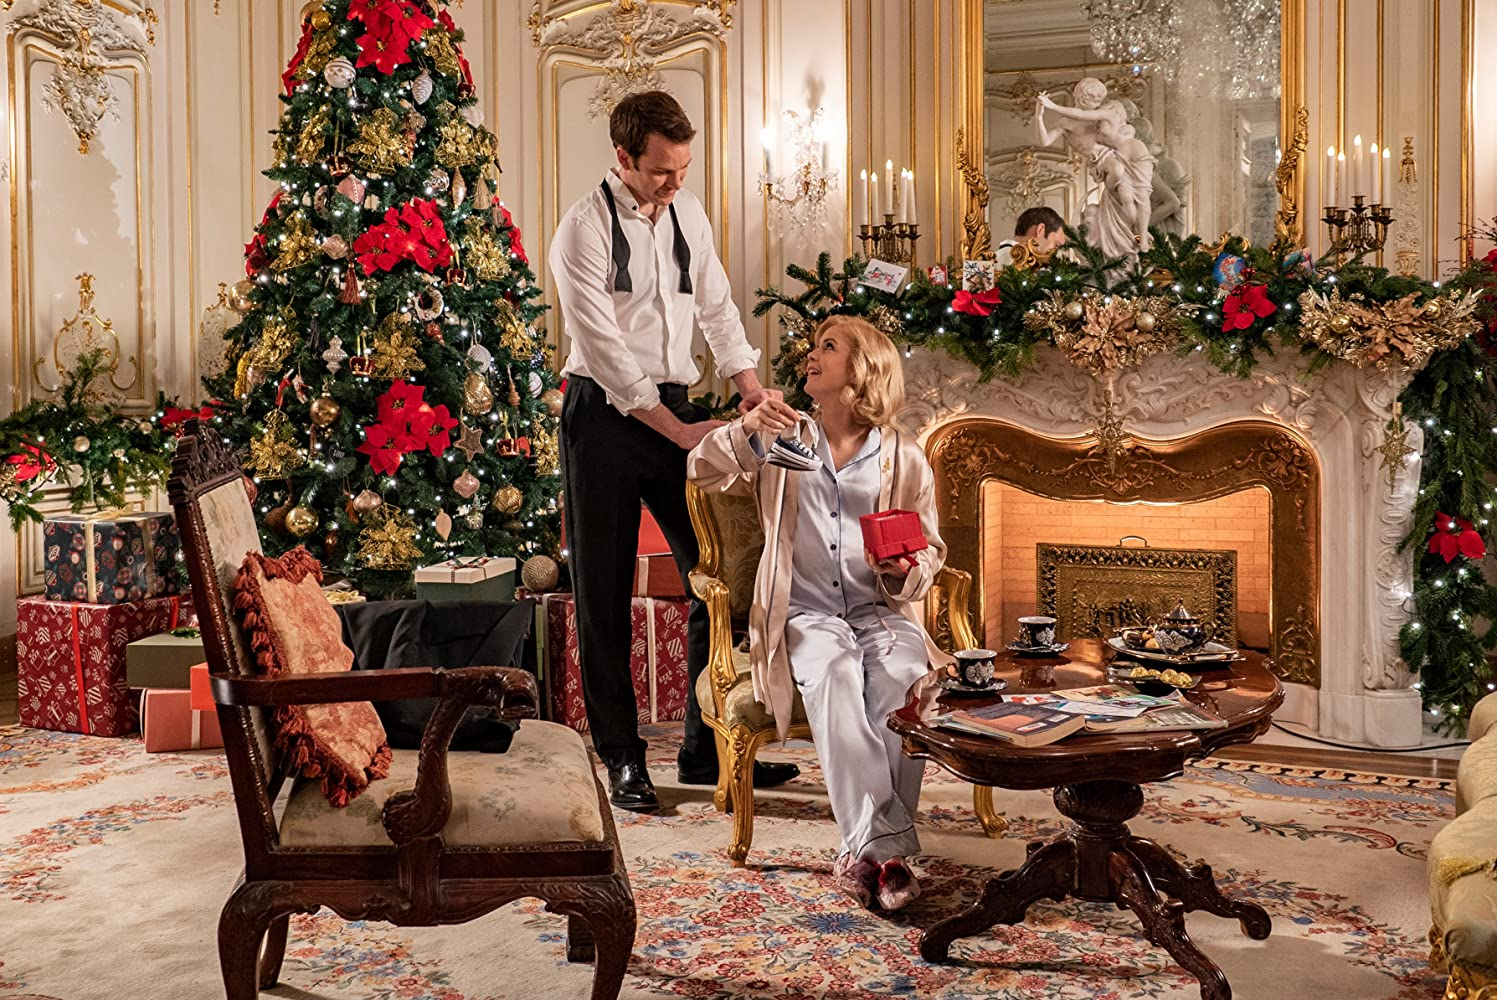 Rose McIver and Ben Lamb in A Christmas Prince: The Royal Baby (2019)